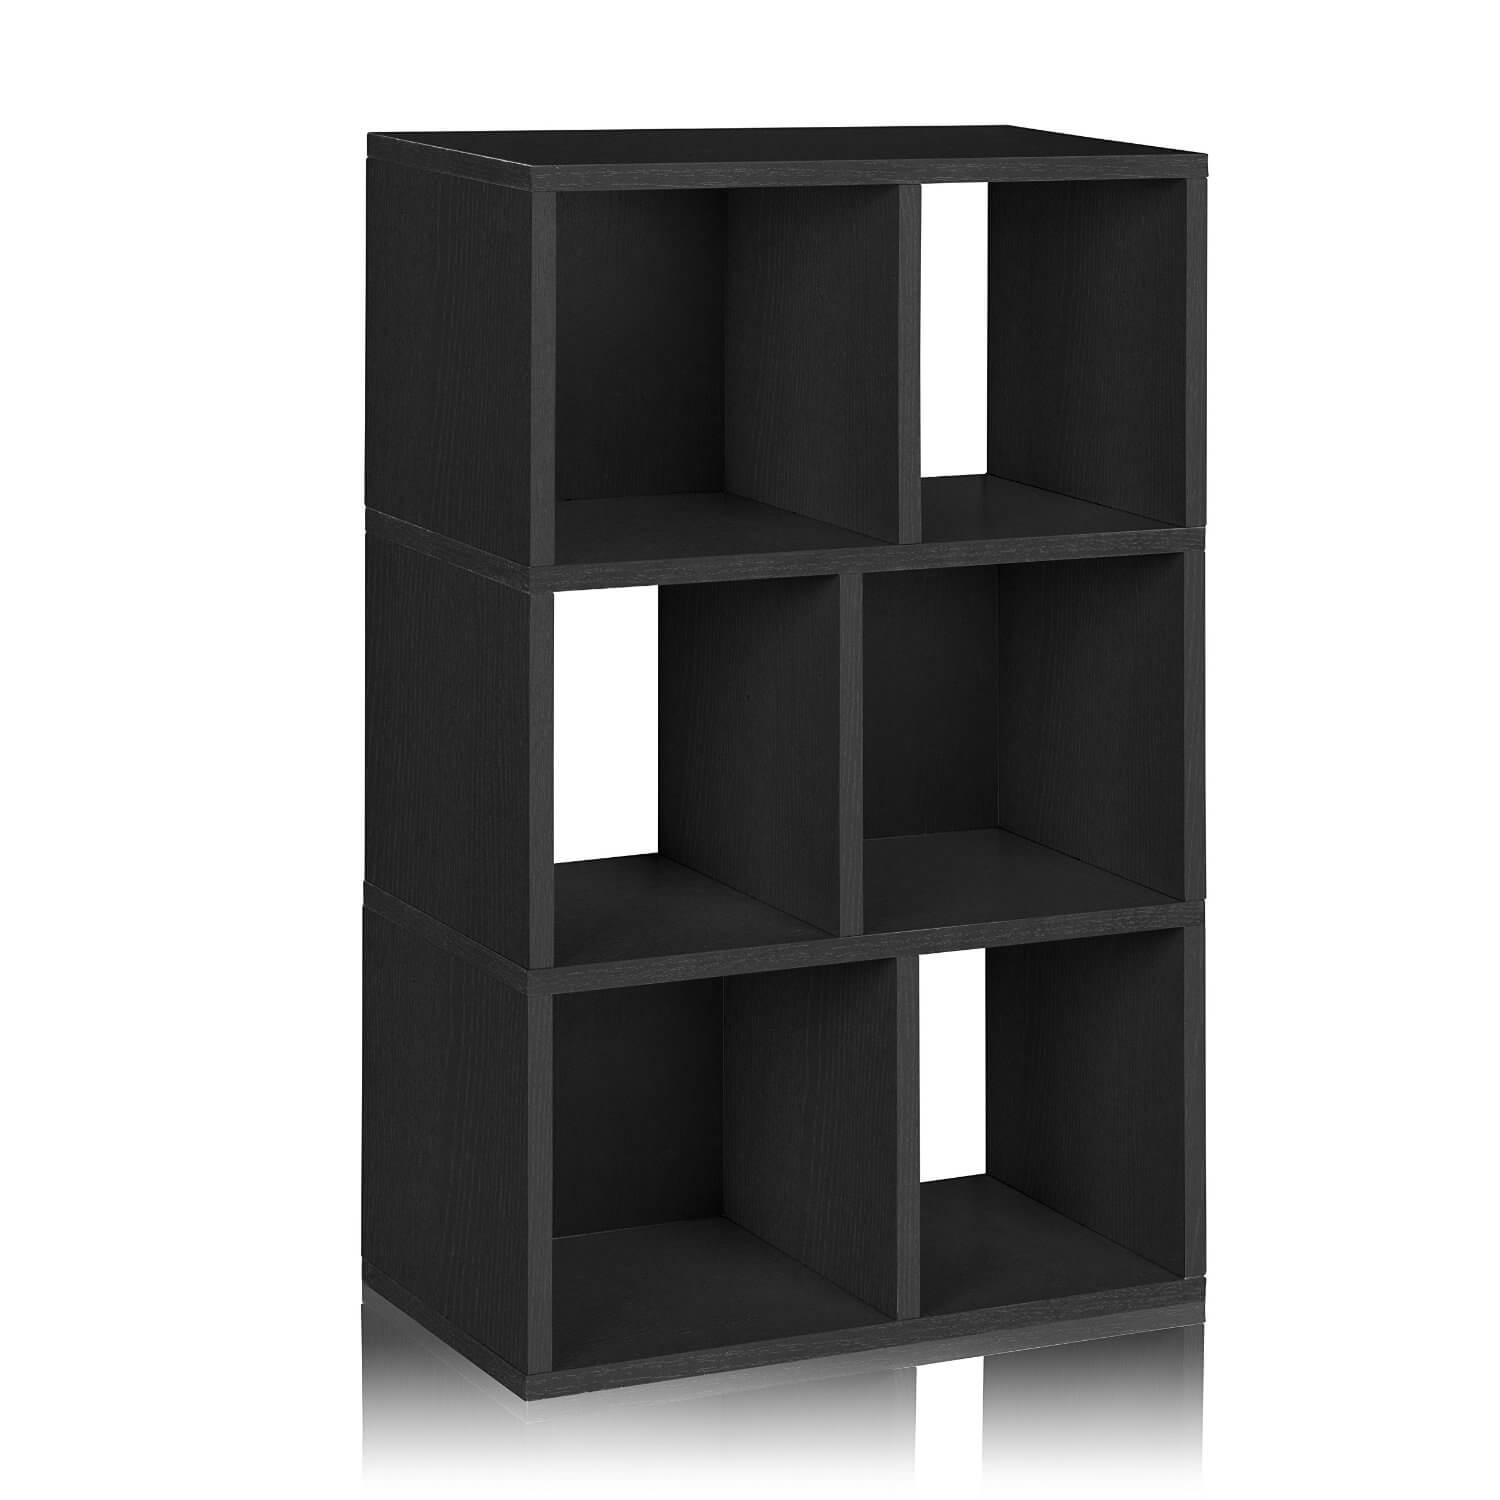 15 6 cube bookcases shelves and storage options